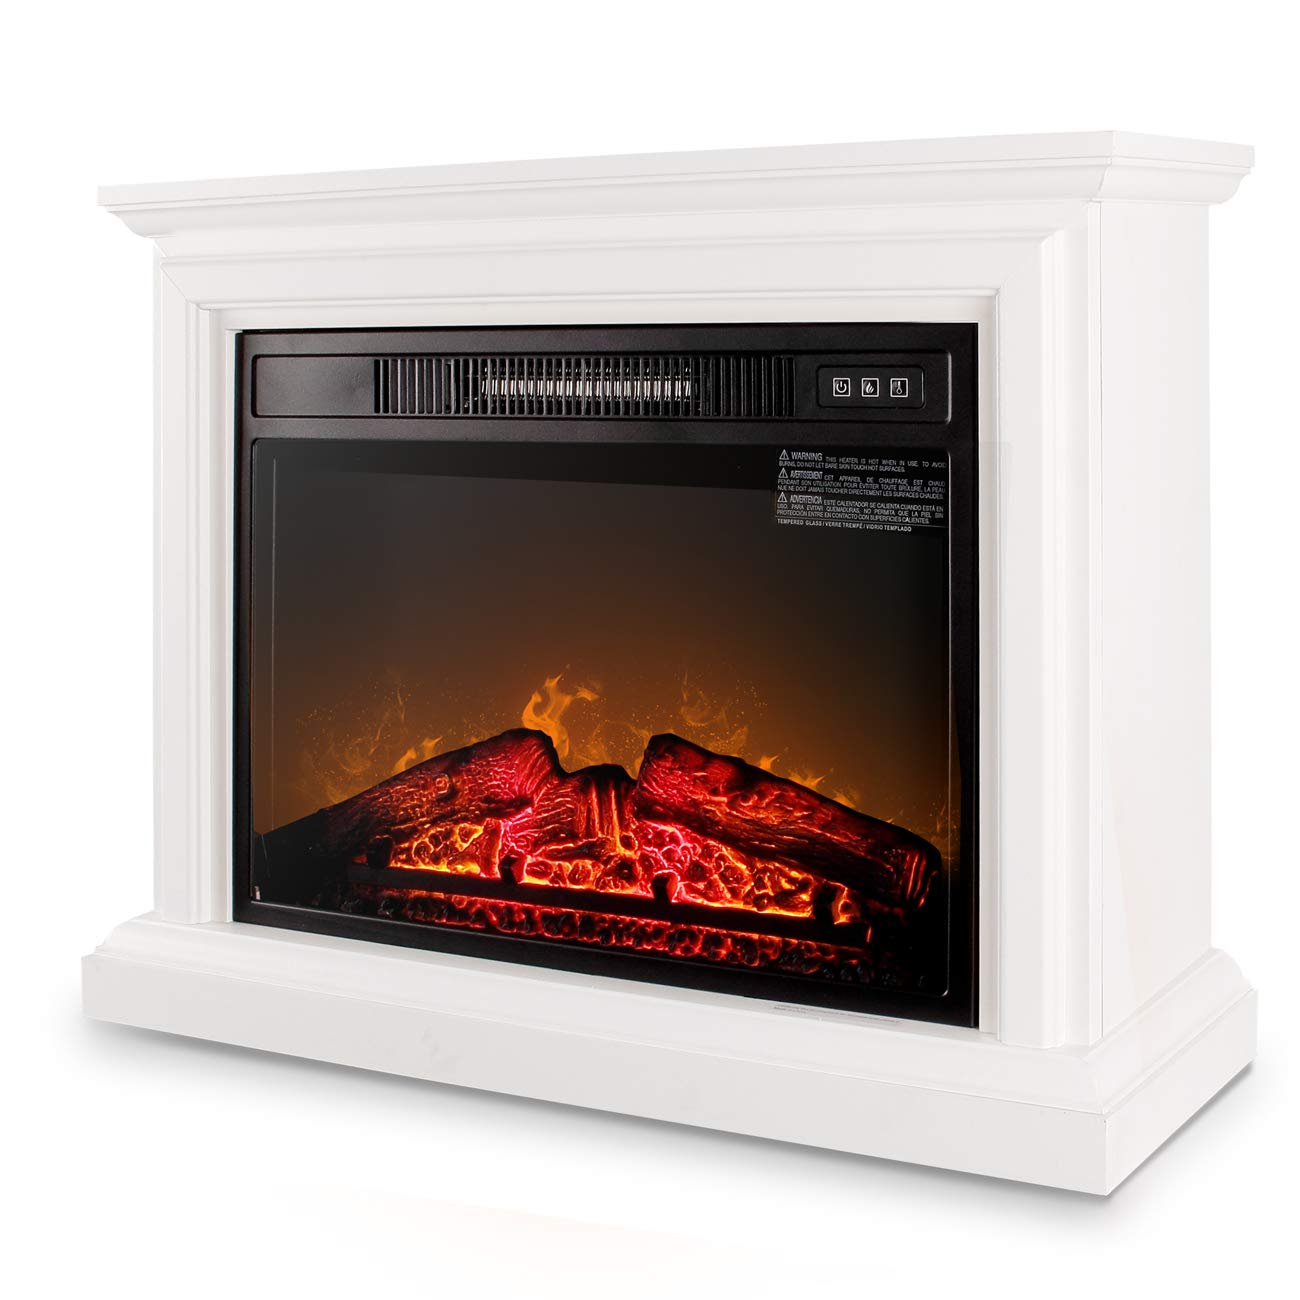 Large Room Electric Quartz Infrared Fireplace Heater Deluxe Mantel, w/ Remote Control 1400 Watt